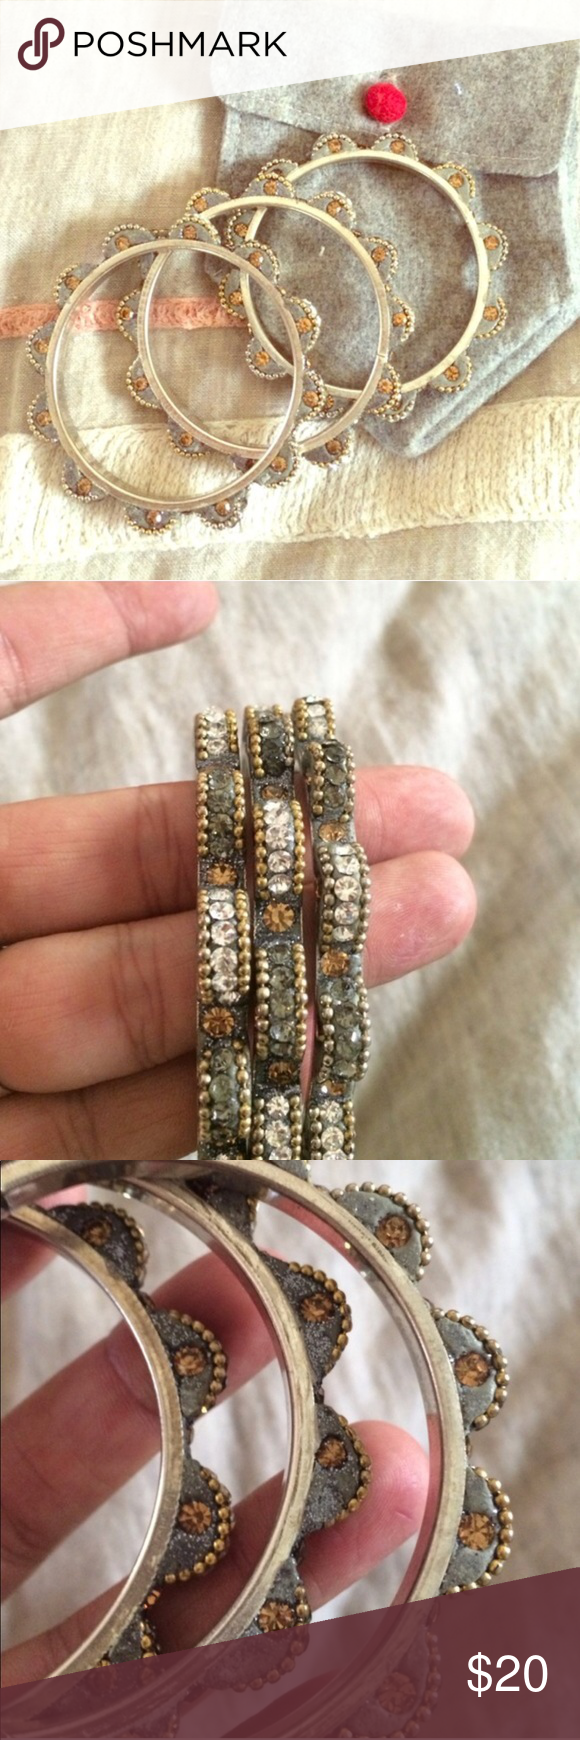 Anthropologie diamond bangles Lovely and in pristine condition Anthropologie Jewelry Bracelets